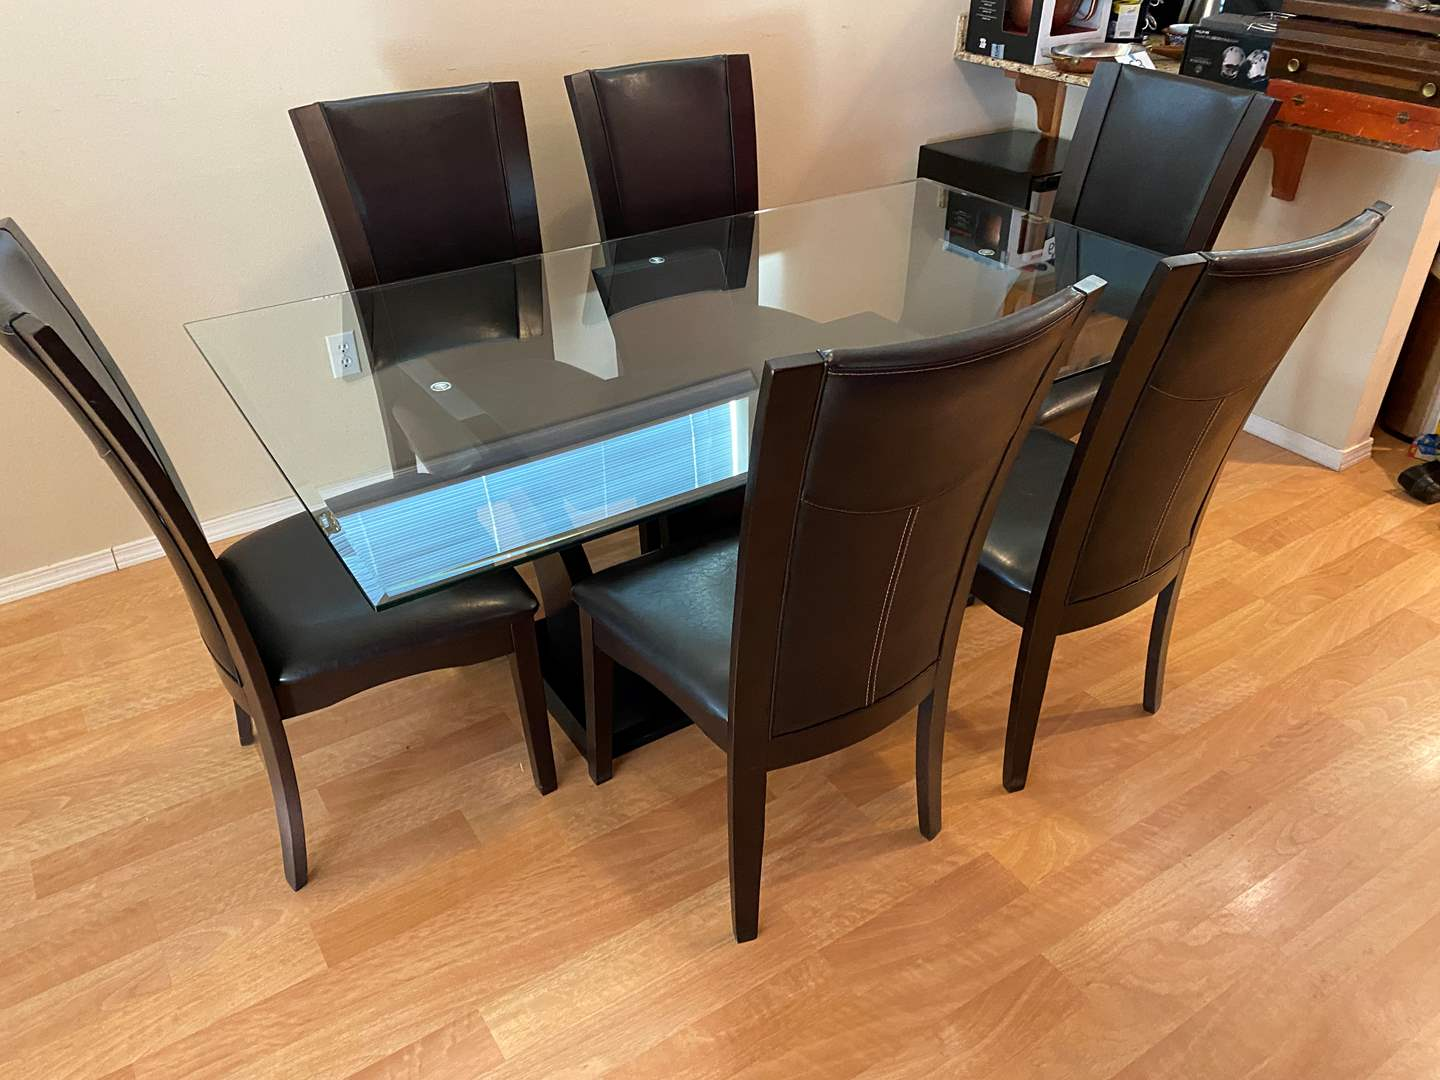 Lot # 107 - Heavy Beveled Glass Top Dining Room Table w/ 6 Chairs (main image)